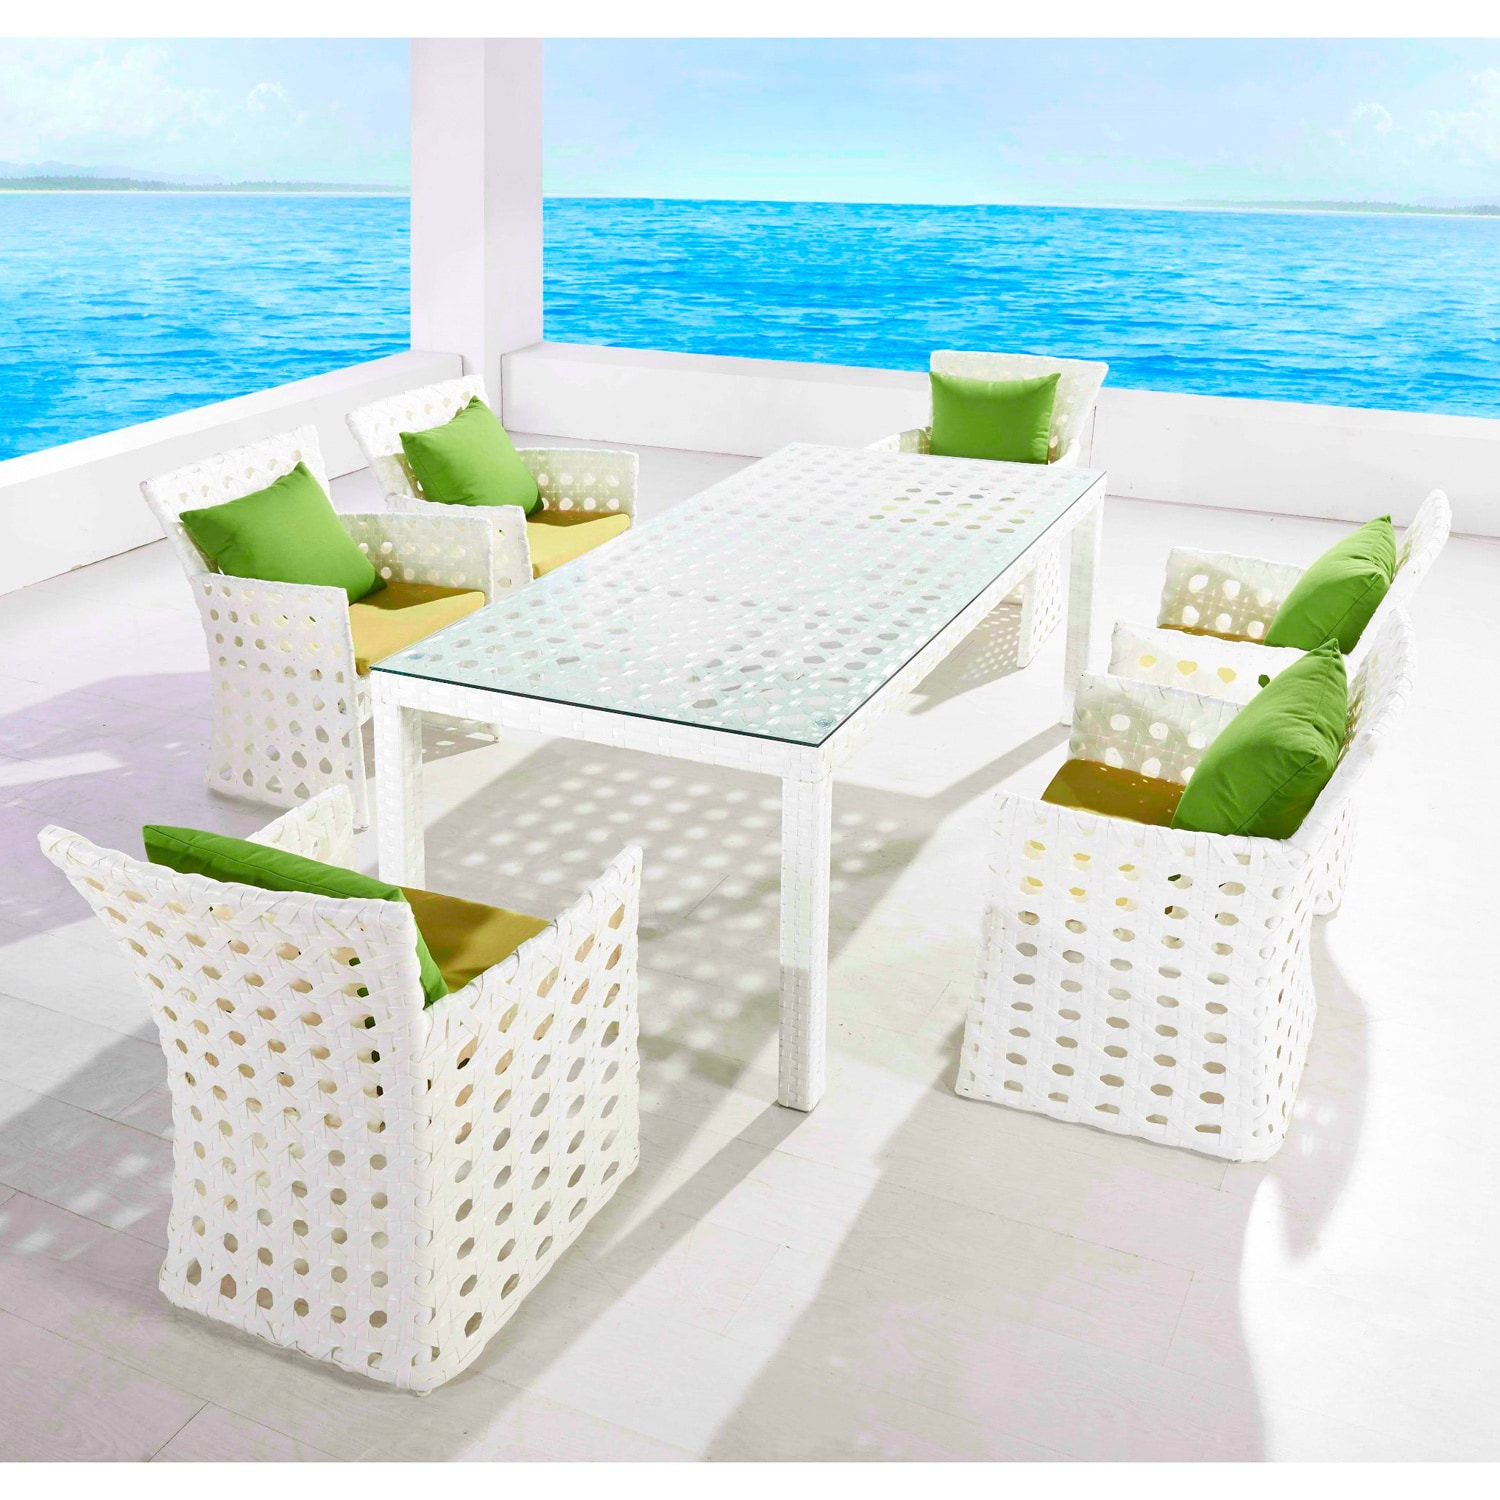 Ceets Coral 7-piece All Weather Outdoor Dining Set (Coral...